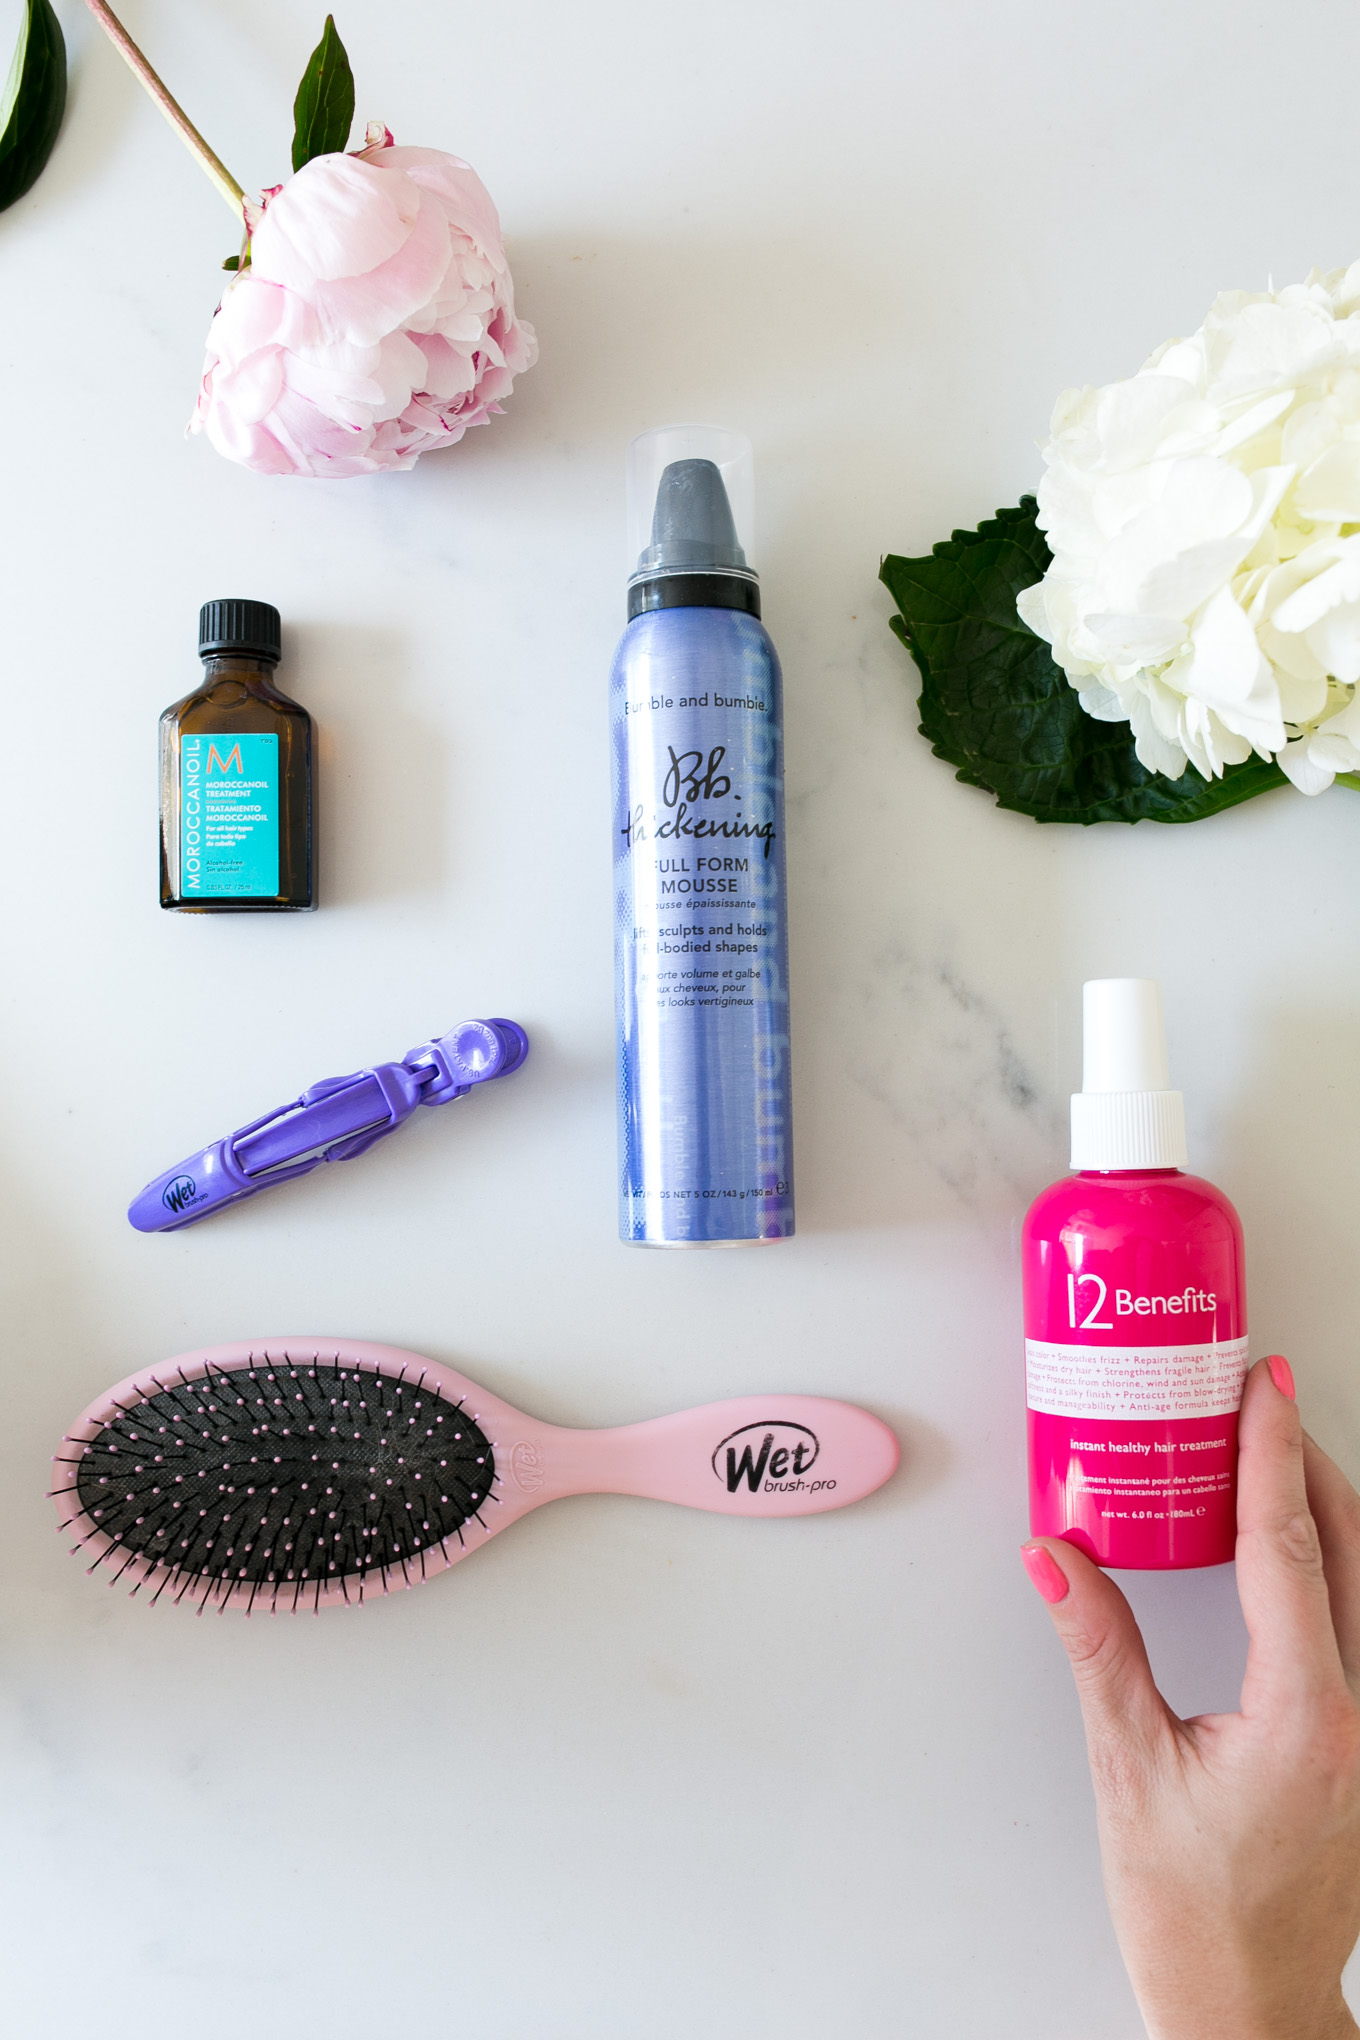 Blogger Daryl-Ann Denner of Something Beautiful shares her favorite hair care products to give full and healthy hair